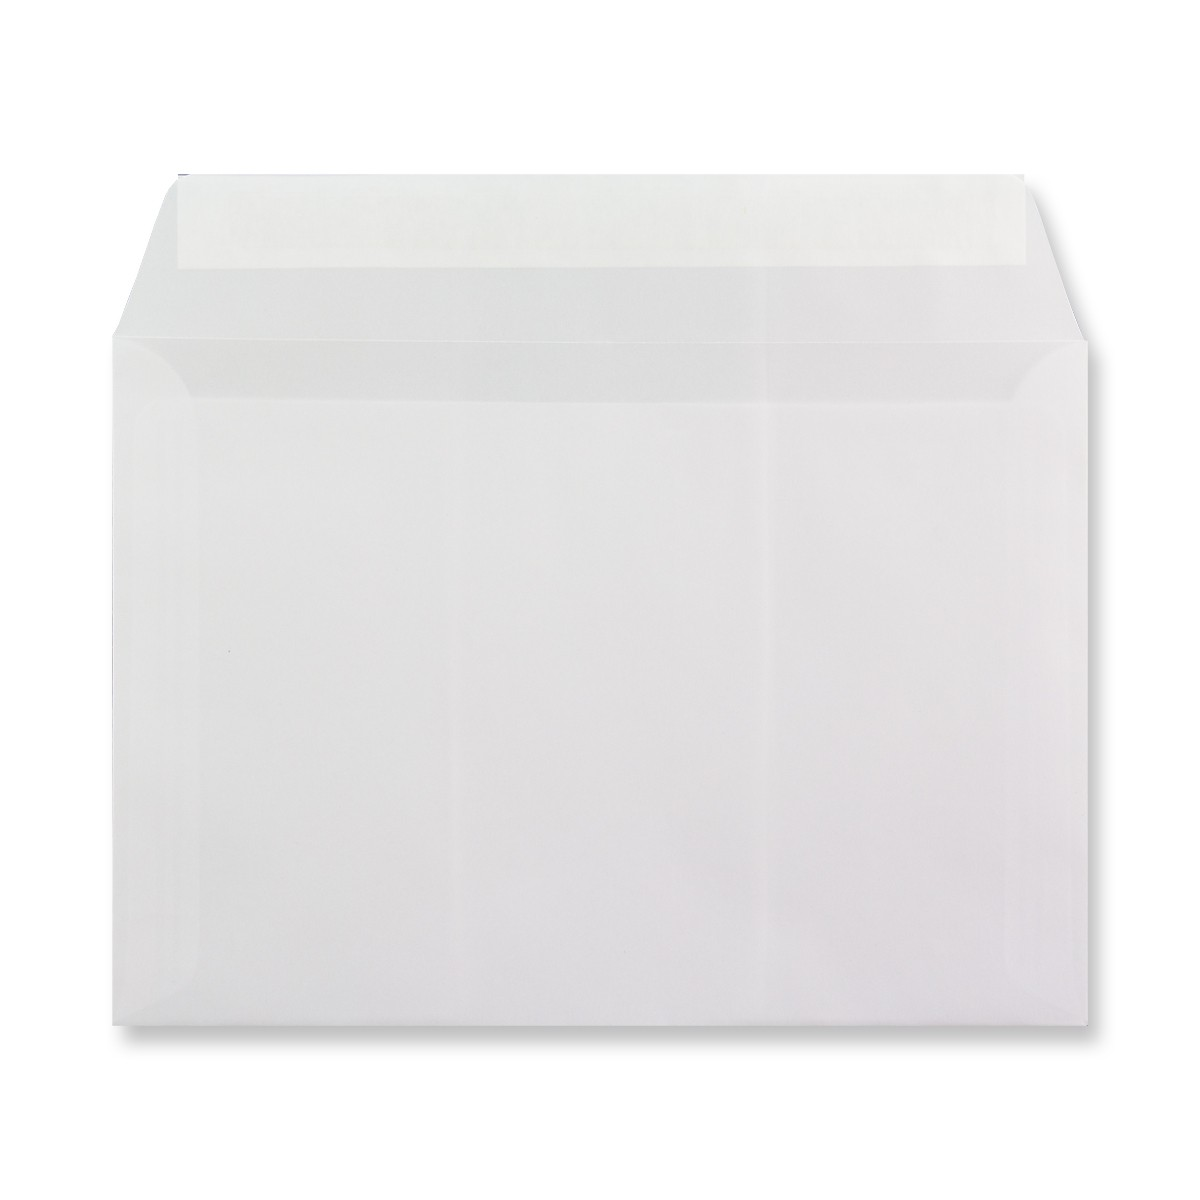 C5 WHITE TRANSLUCENT ENVELOPES